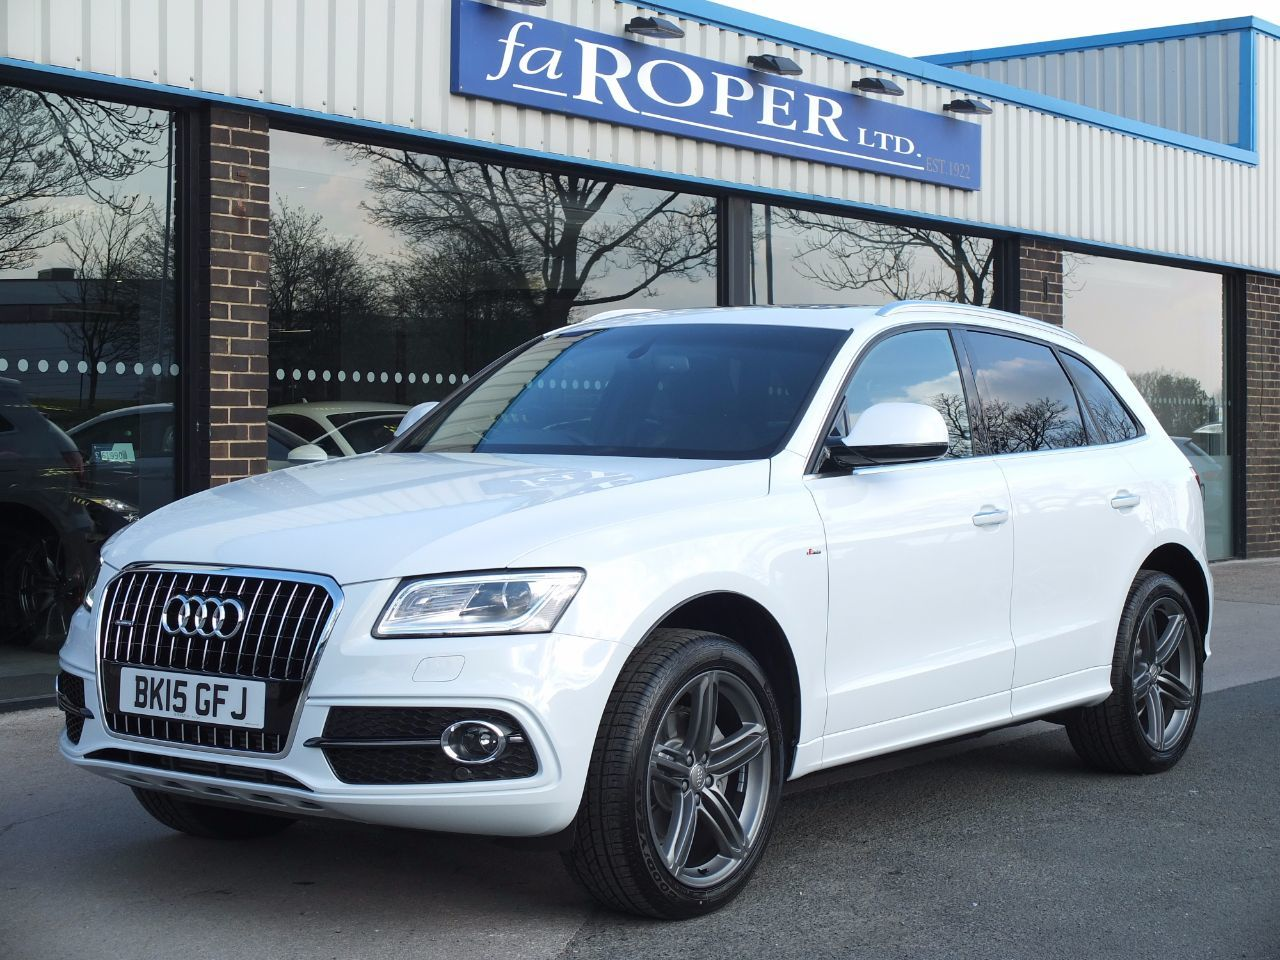 Audi Q5 2.0 TDI quattro S Line Plus 177ps S Tronic, Pan Roof +++Spec Four Wheel Drive Diesel Glacier White MetallicAudi Q5 2.0 TDI quattro S Line Plus 177ps S Tronic, Pan Roof +++Spec Four Wheel Drive Diesel Glacier White Metallic at fa Roper Ltd Bradford